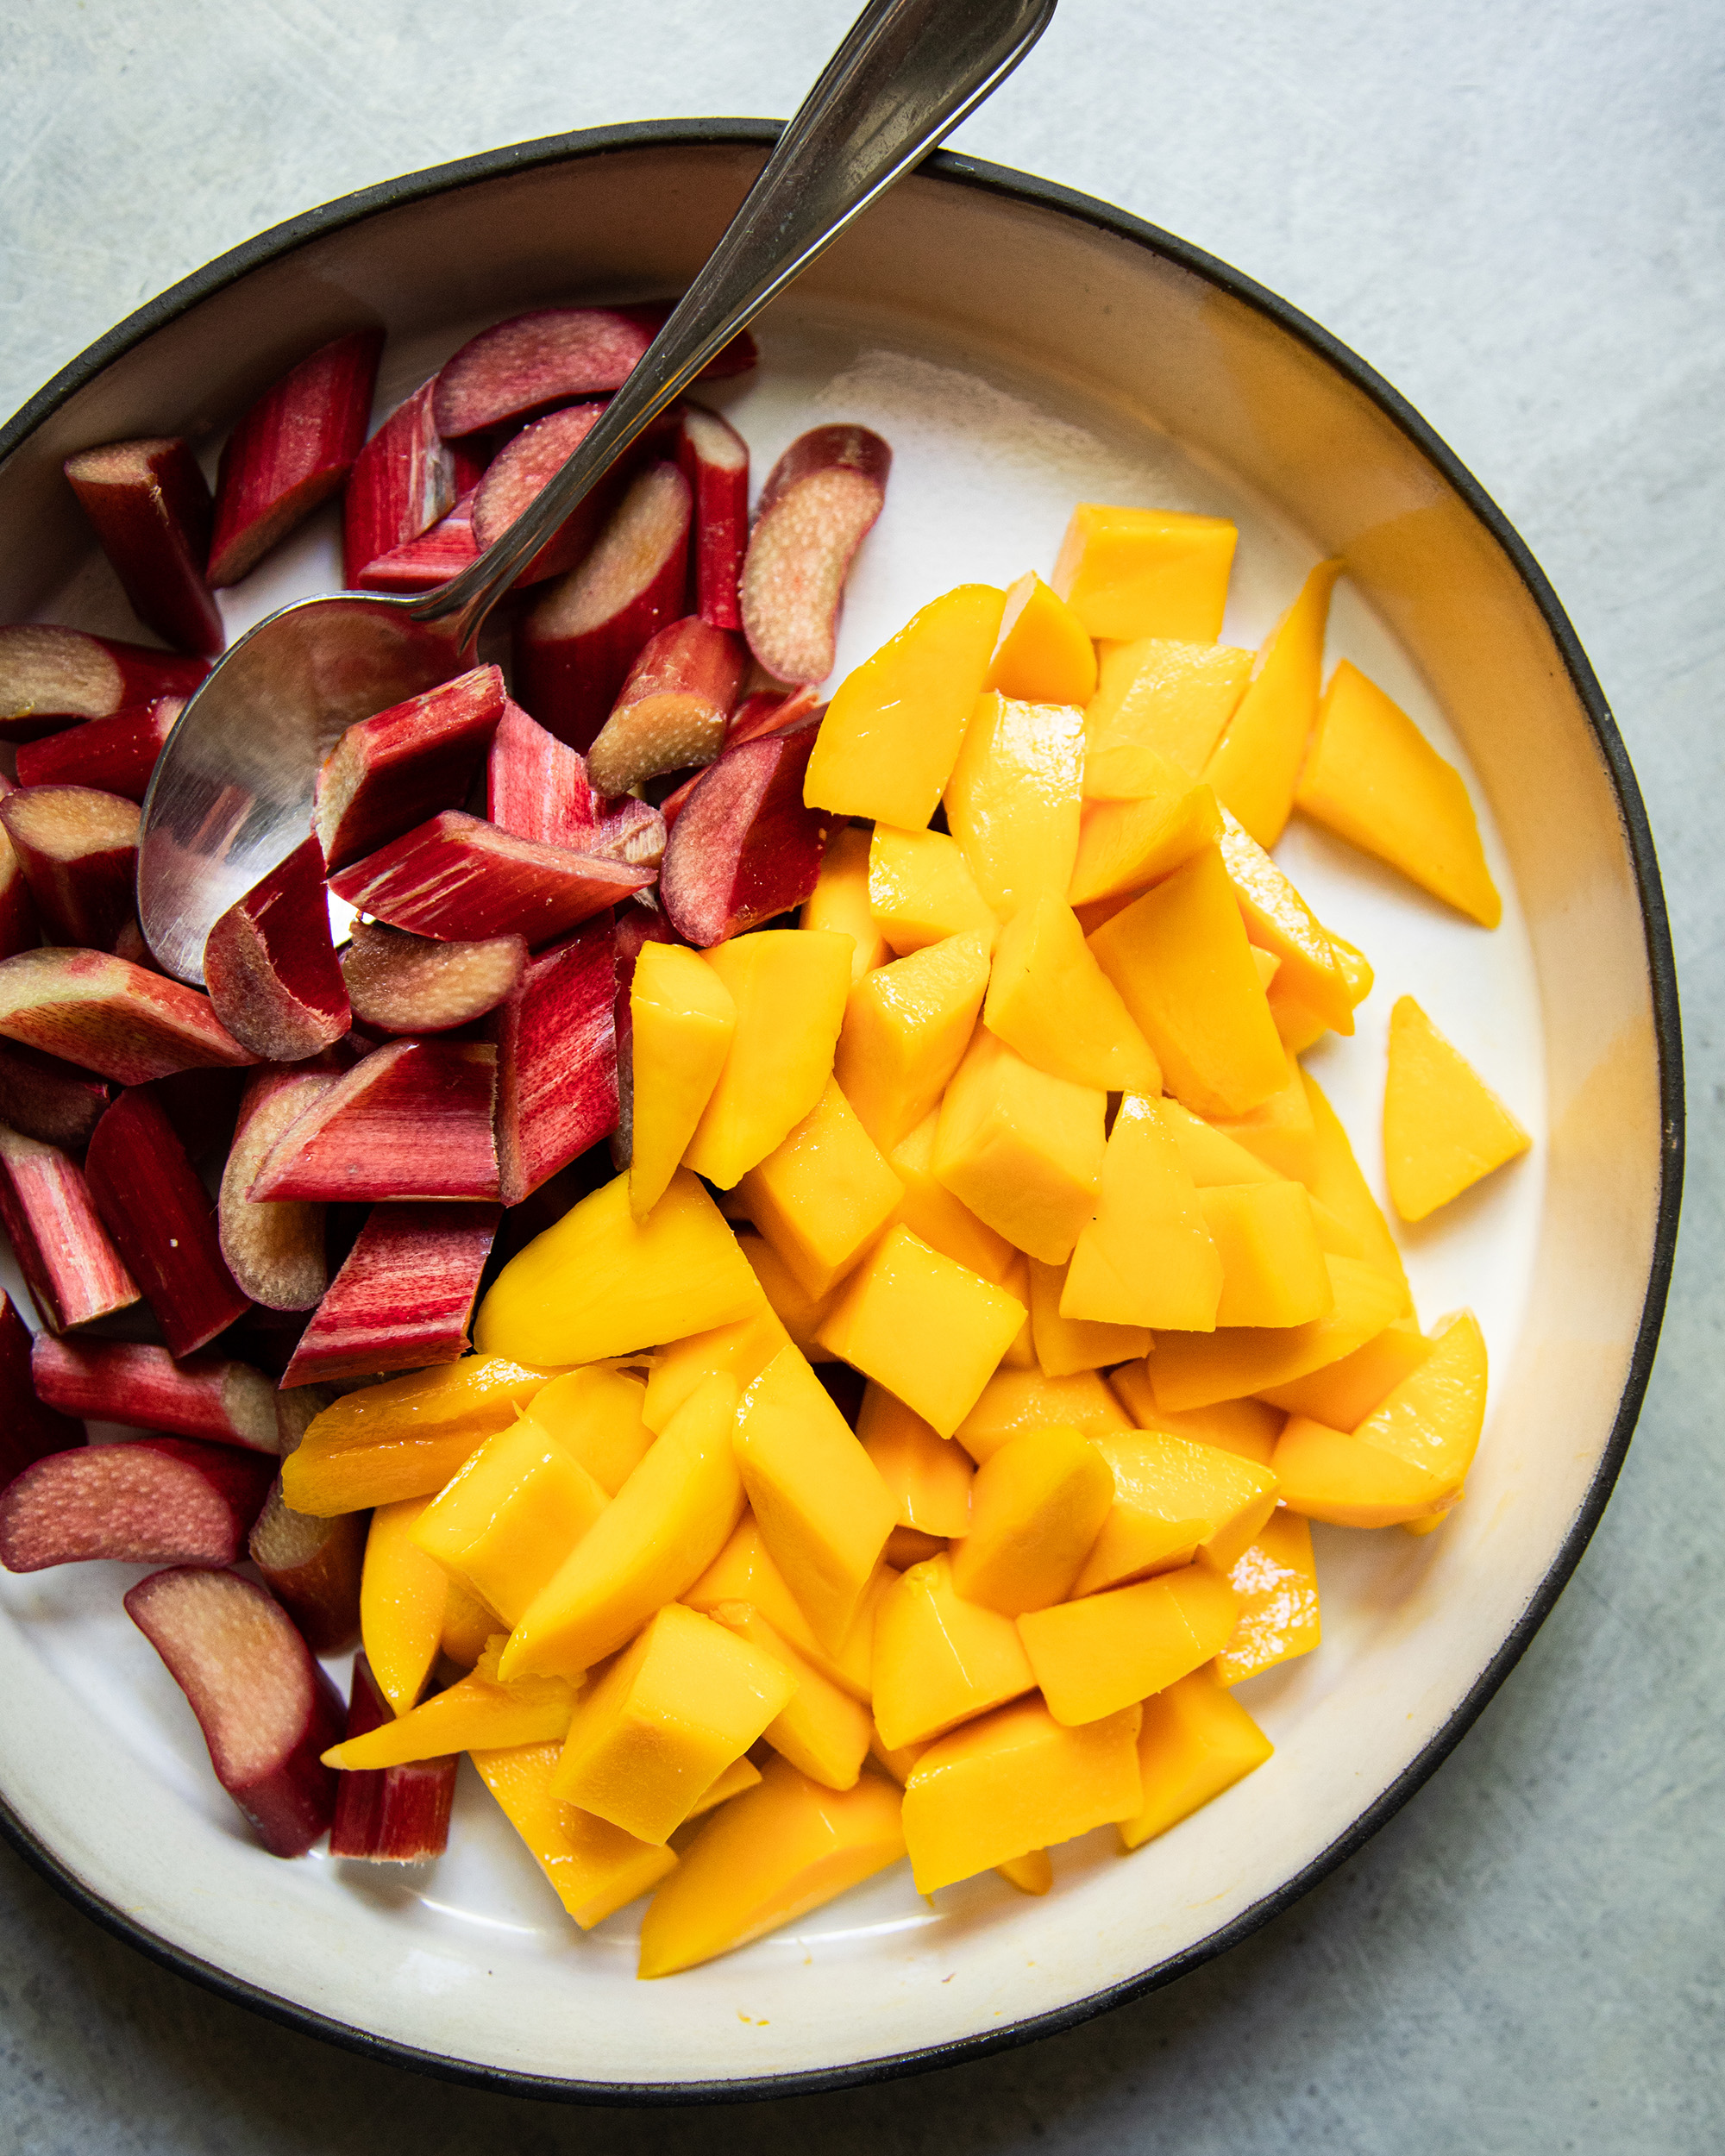 An up close, overhead shot of chopped rhubarb and mango pieces in a ceramic dish.